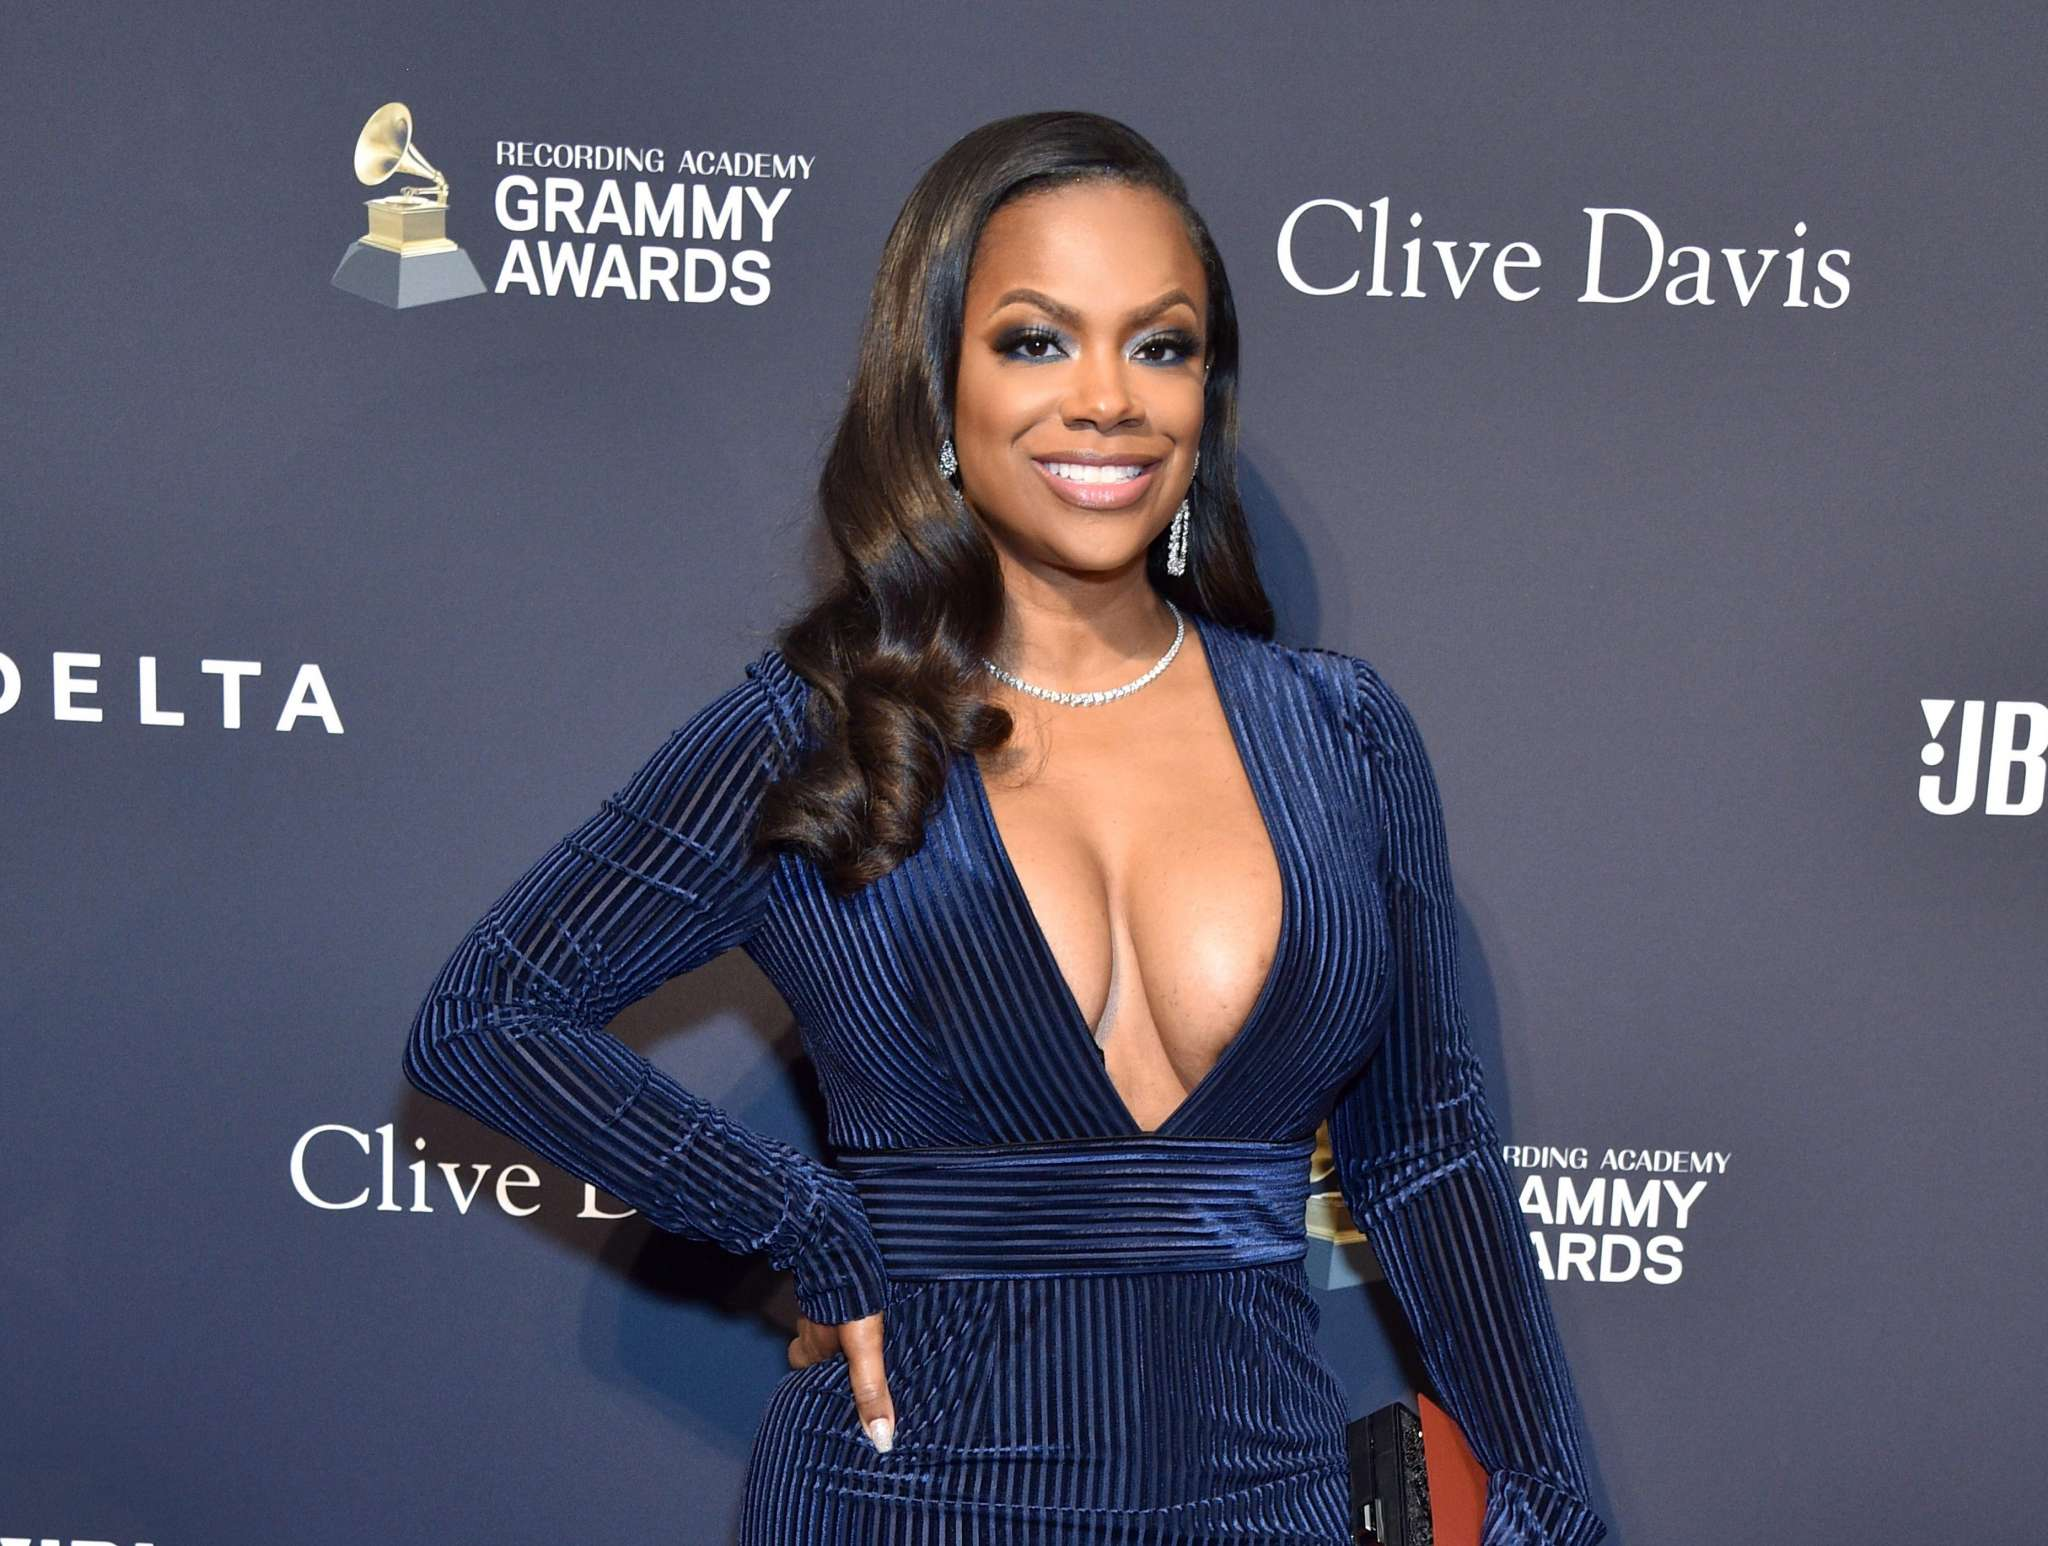 kandi-burruss-has-fans-excited-with-a-new-body-series-see-the-clip